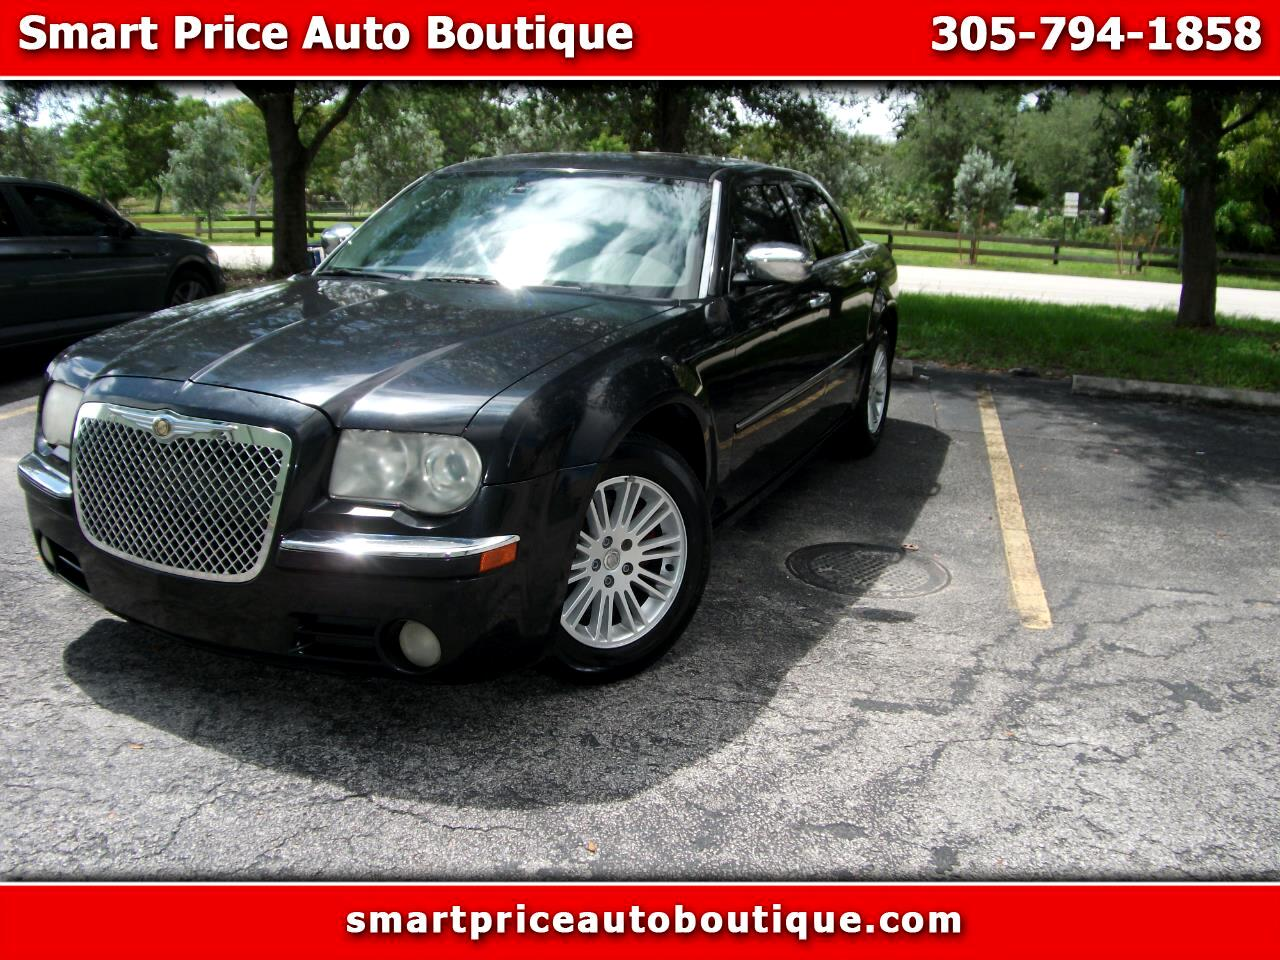 2008 Chrysler 300 4dr Sdn 300 Limited RWD